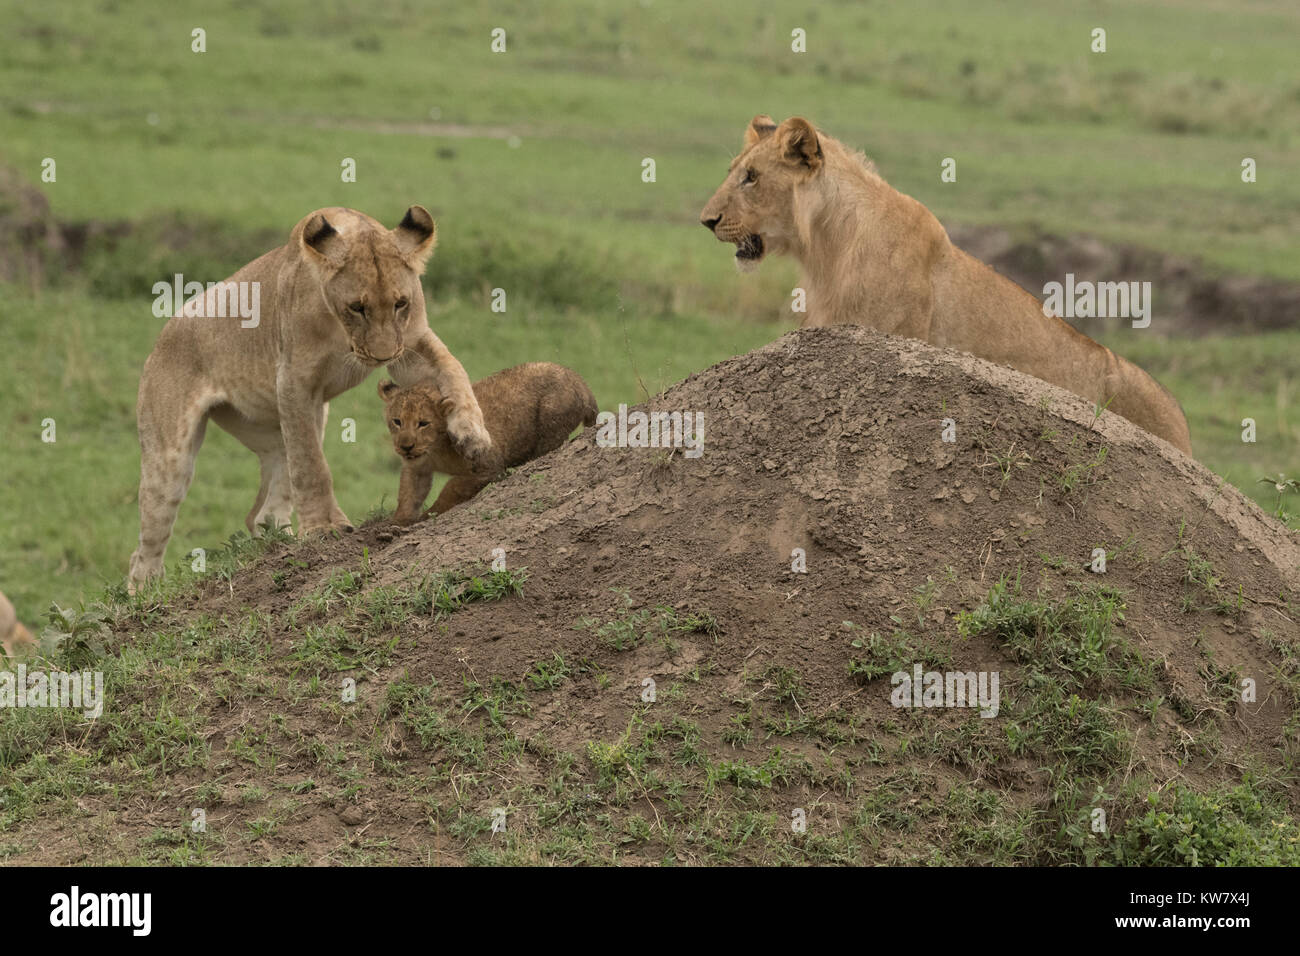 Lioness (Panthera leo) and two cubs playing with each other Stock Photo